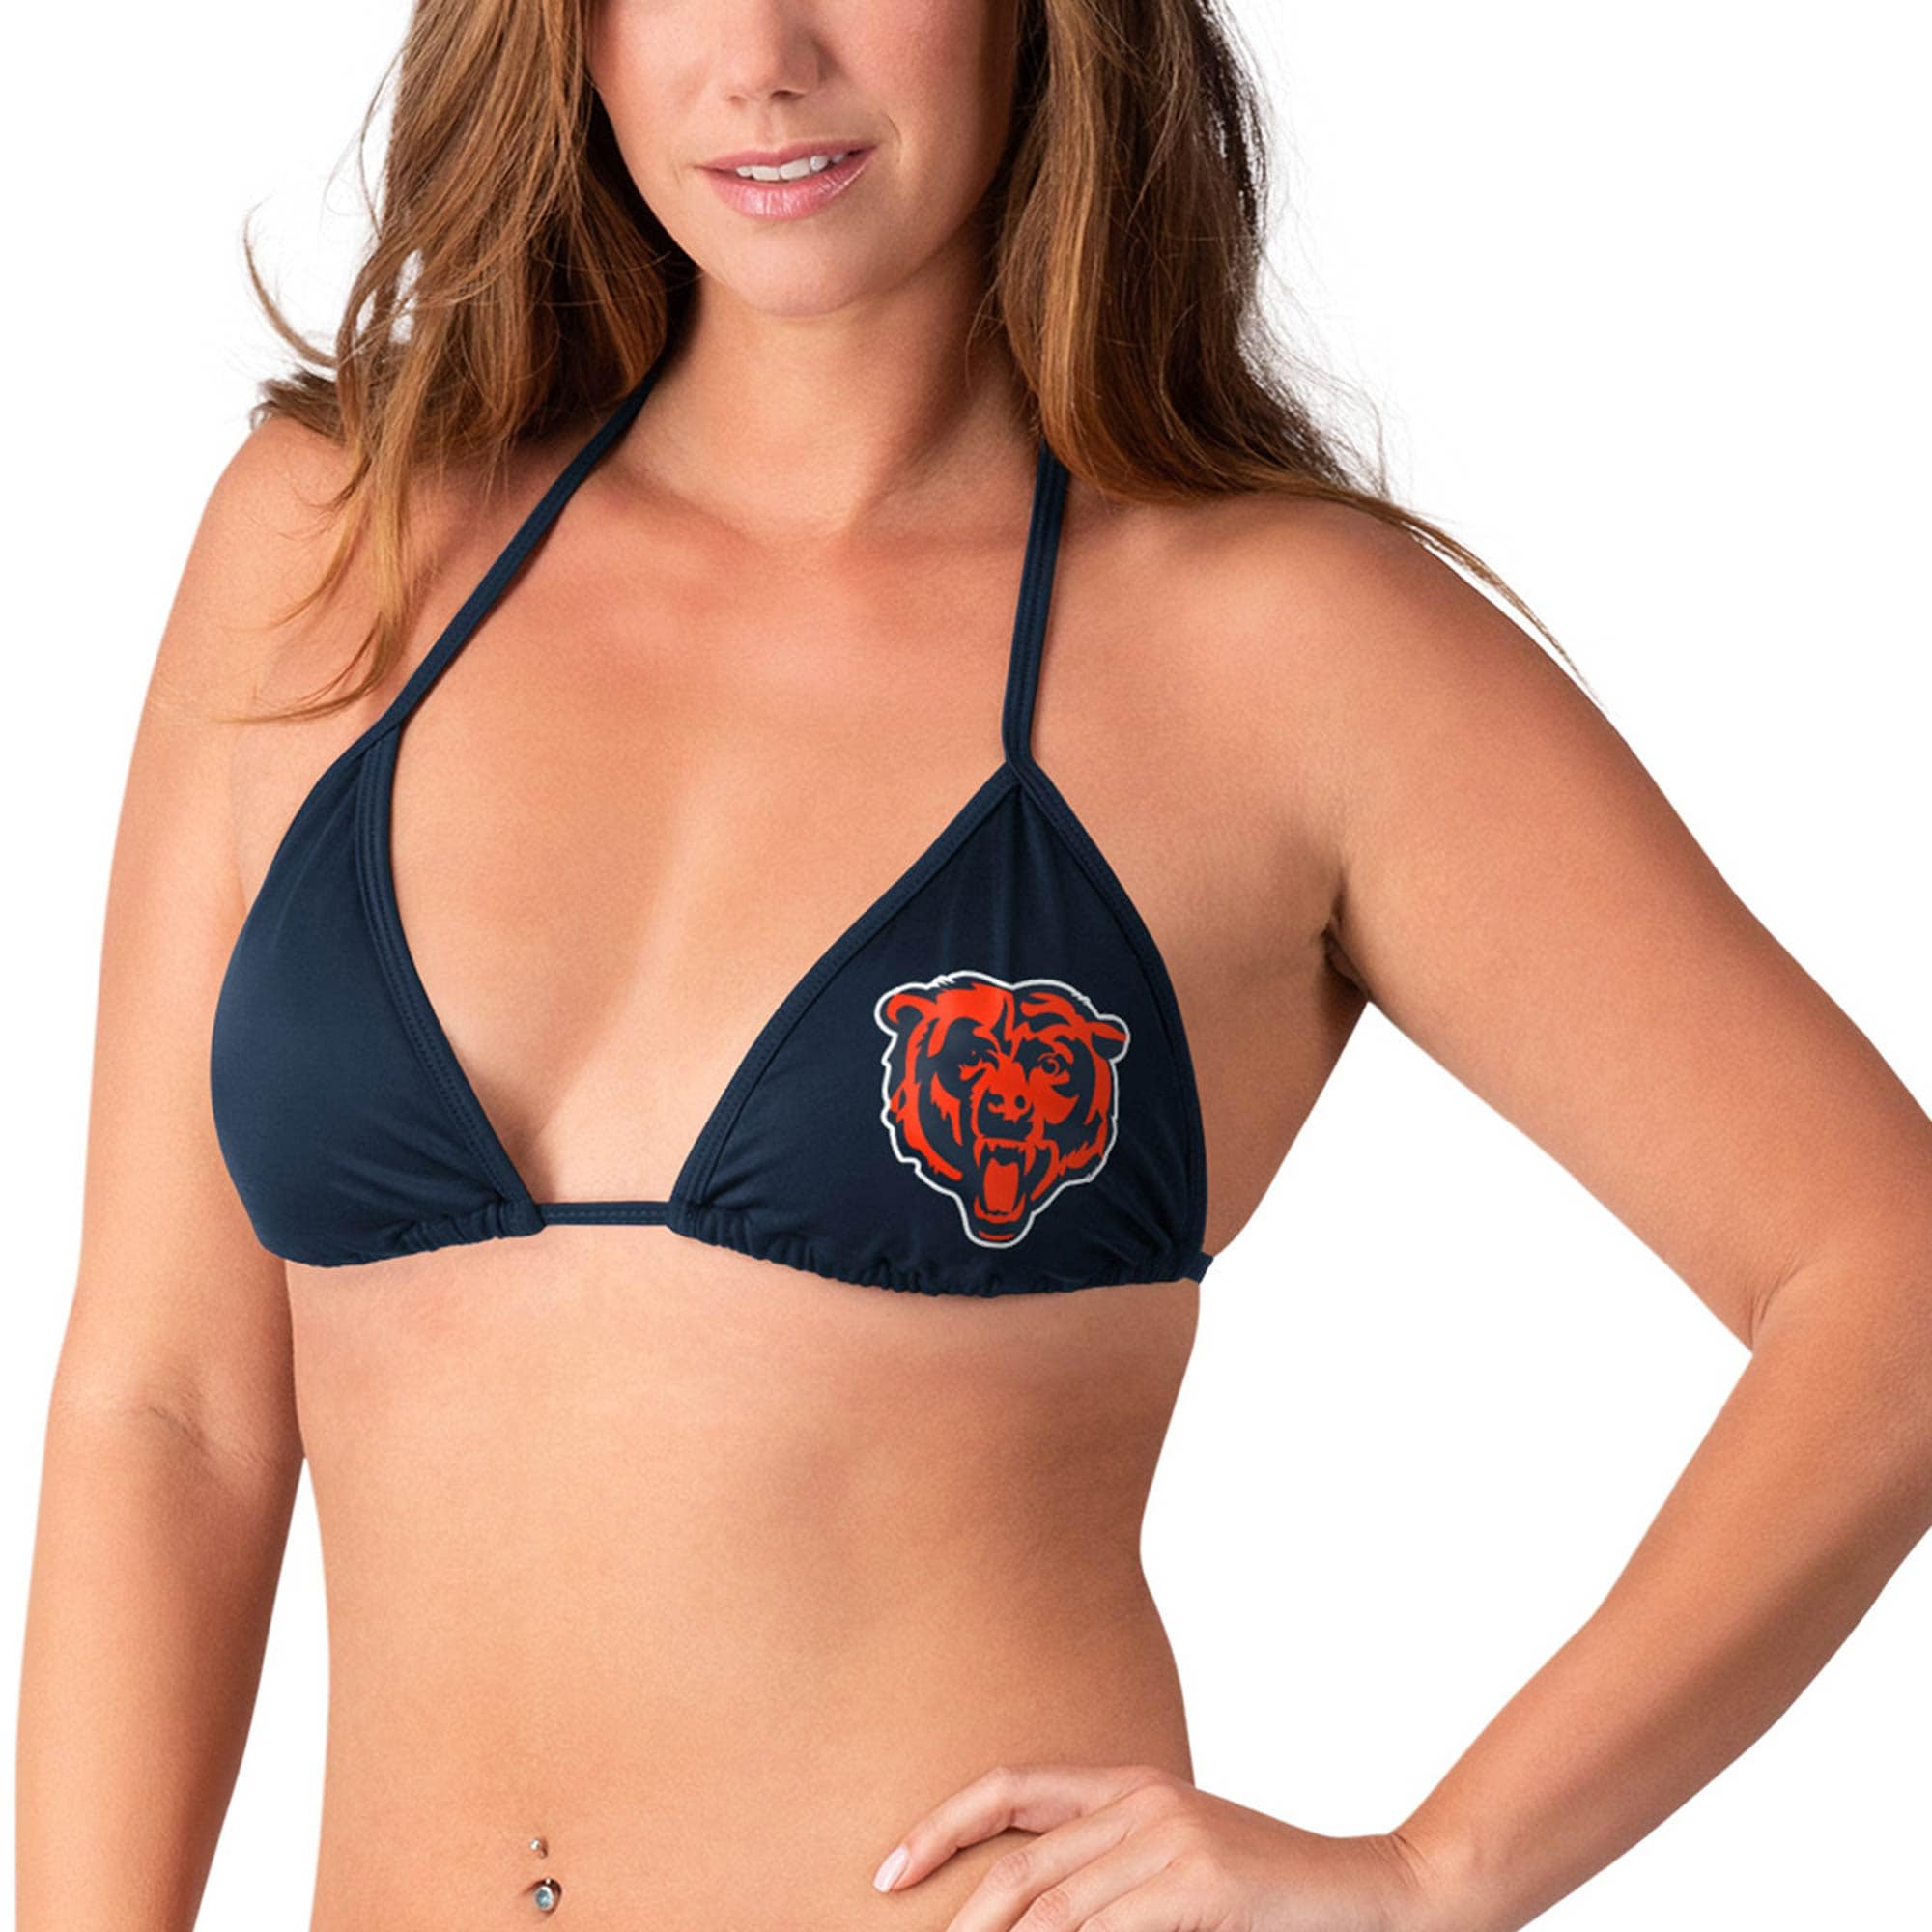 Chicago Bears G-III 4Her by Carl Banks Women's Without Limits Bikini Top - Navy